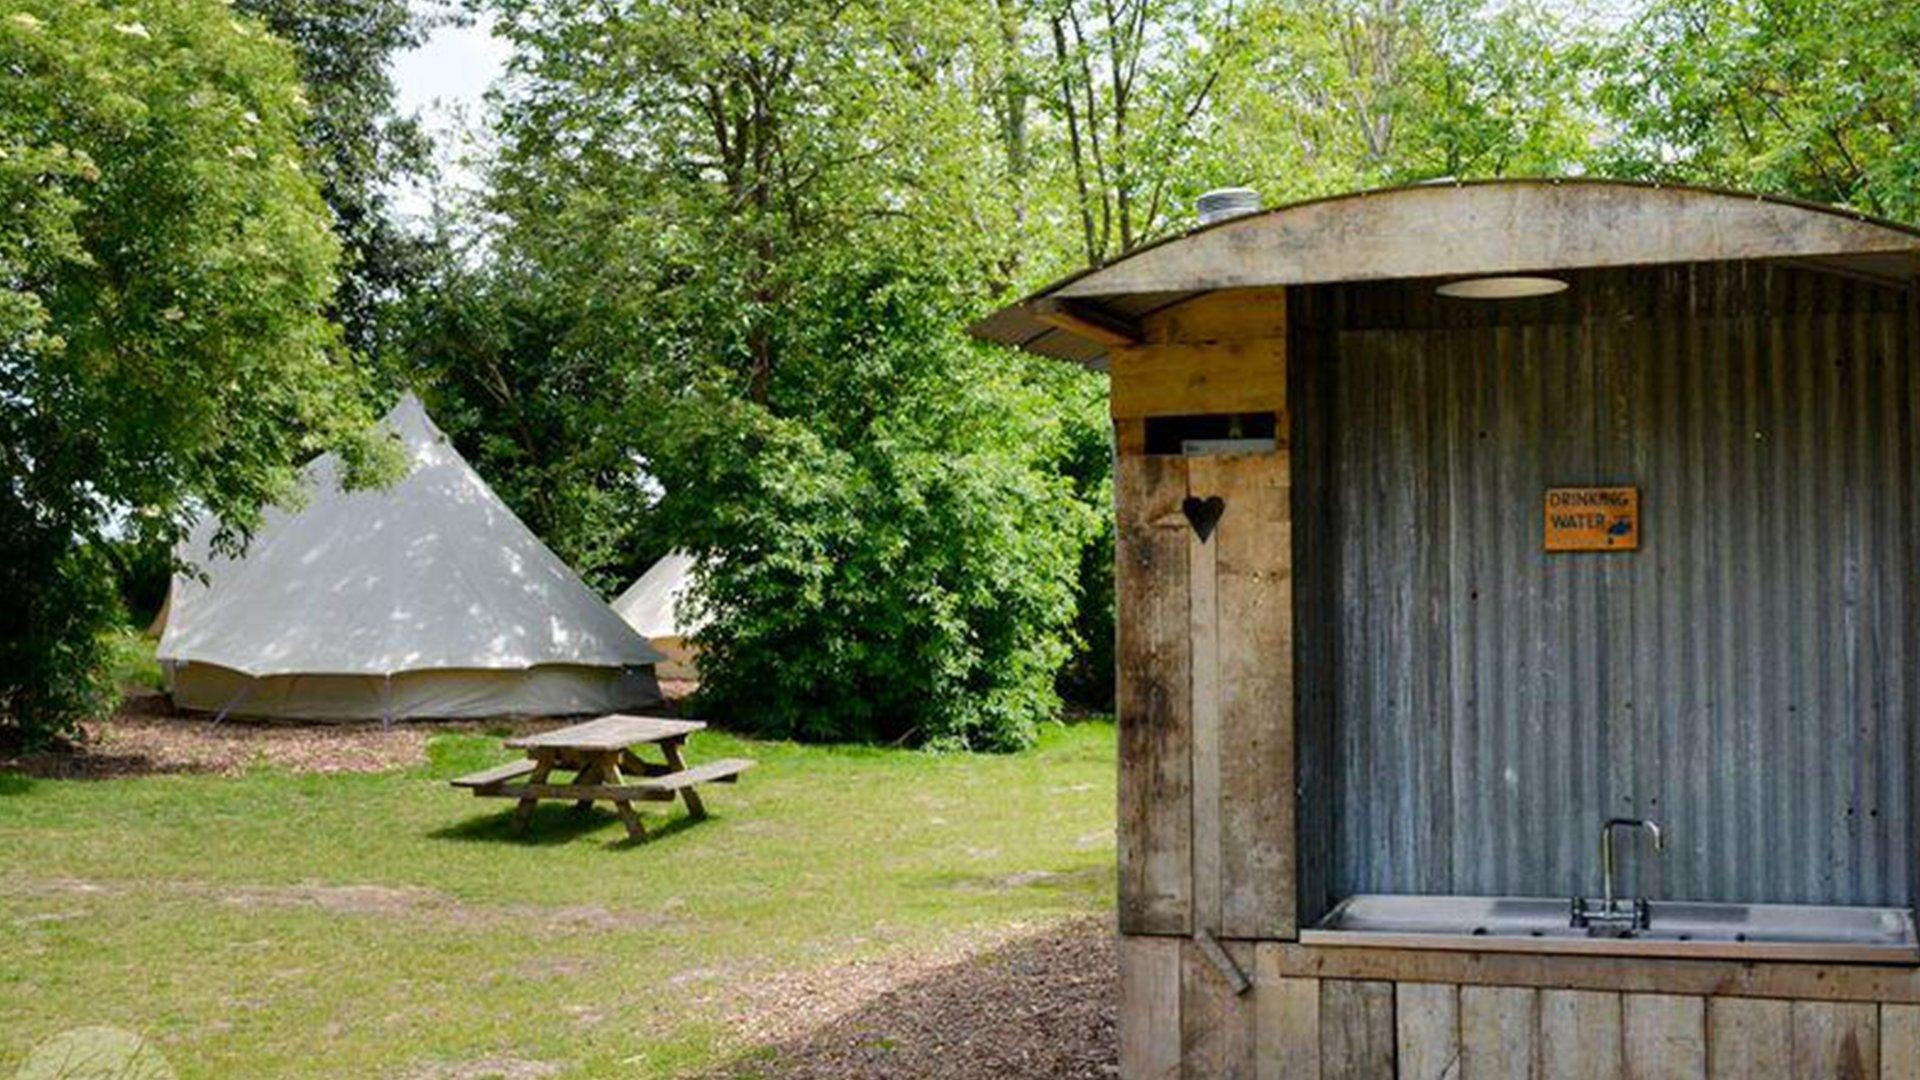 an image of the facilities at Bodiam Campsite